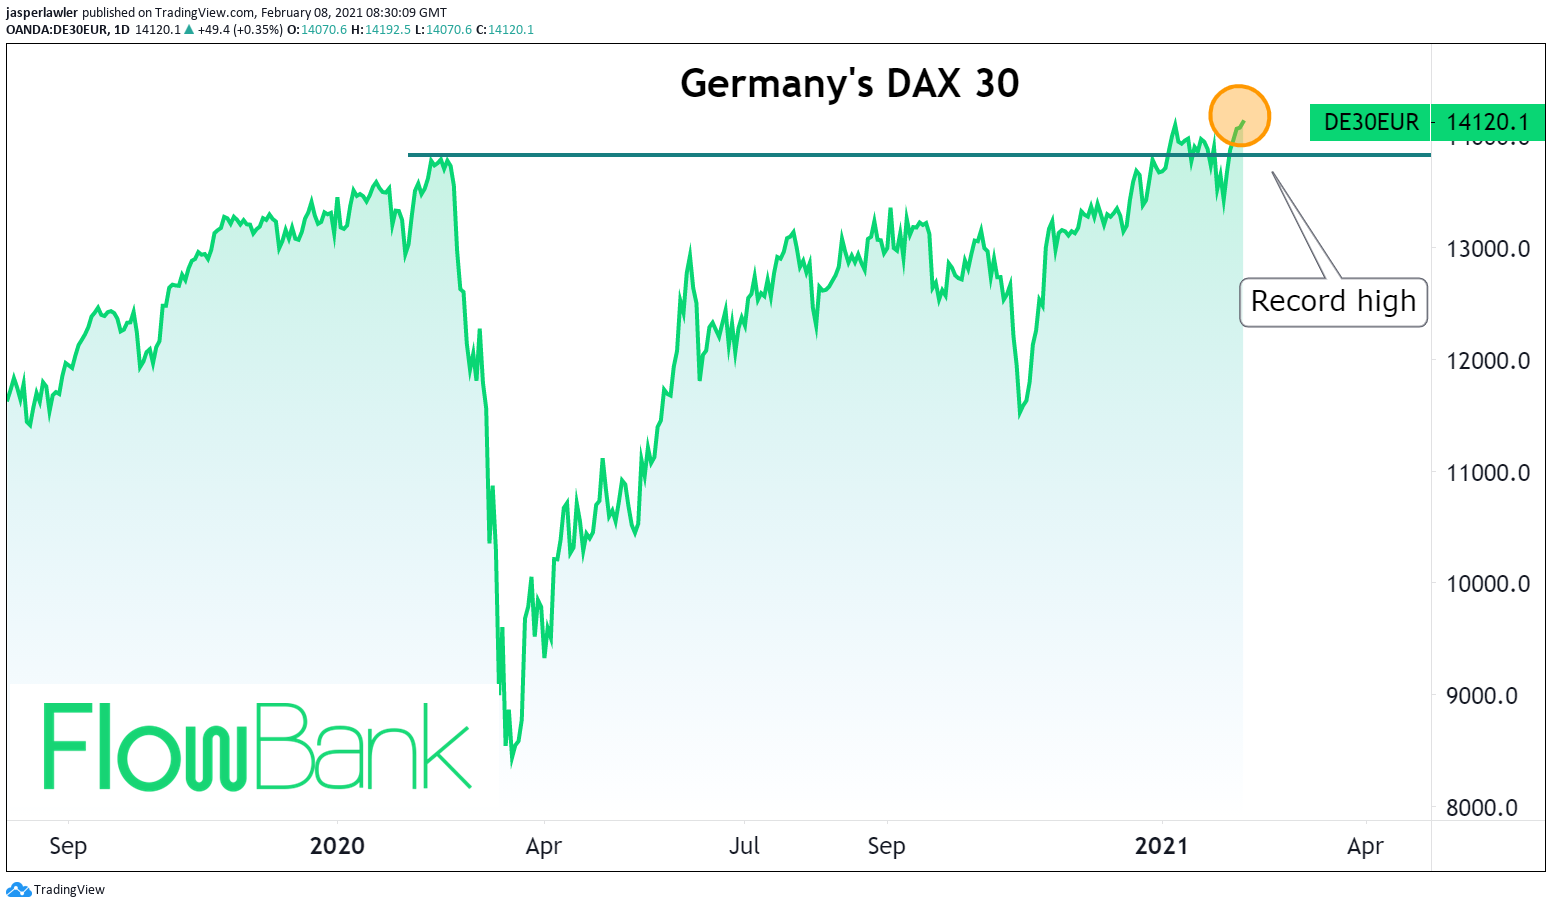 The German bull lives on! #DAX30 index hits fresh record high